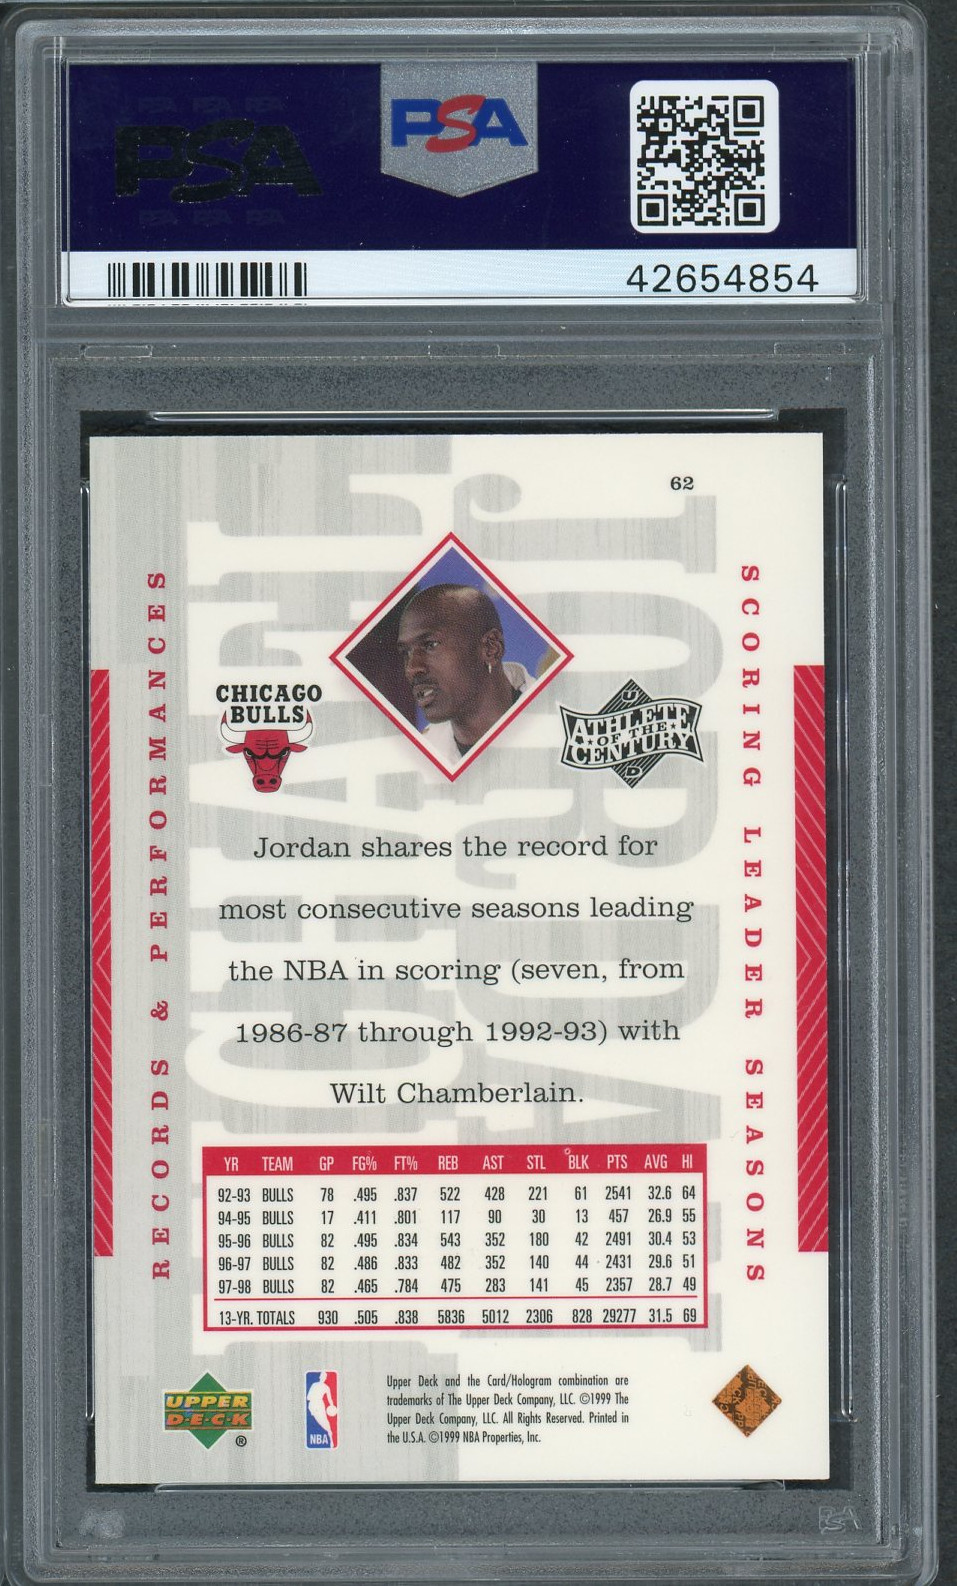 Michael Jordan Chicago Bulls 1999 Upper Deck Athlete of the Century Basketball Card #62 Graded PSA 9 MINT Michael Jordan Chicago Bulls 1999 Upper Deck Athlete of the Century Basketball Card #62 Graded PSA 9 MINT